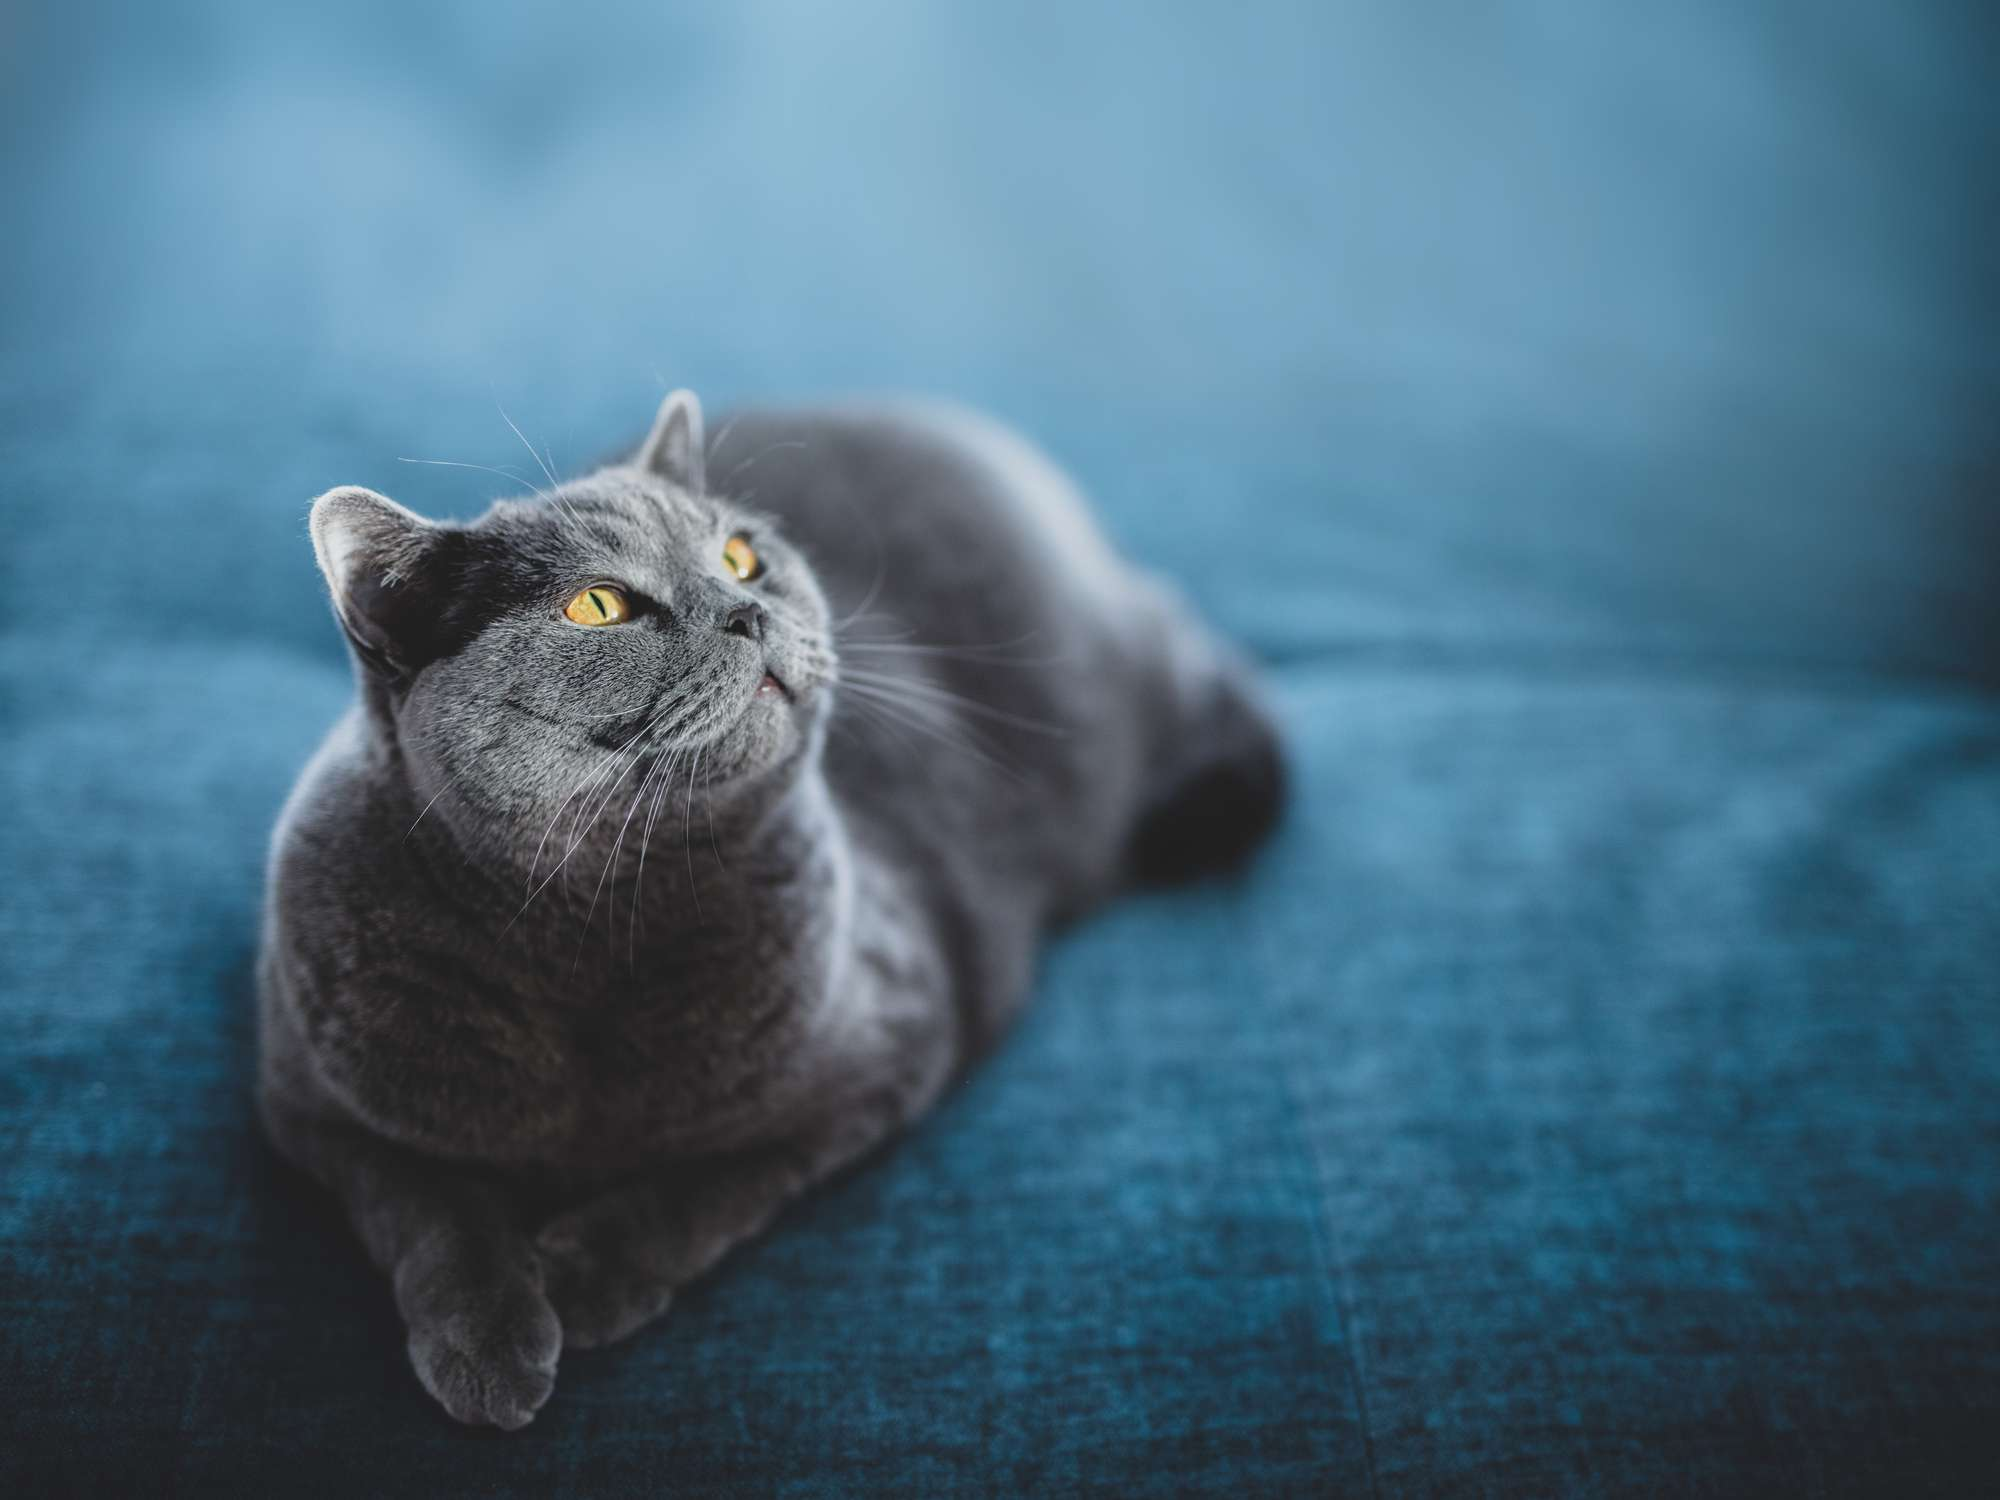 A blue-gray cat sitting on a blue couch.